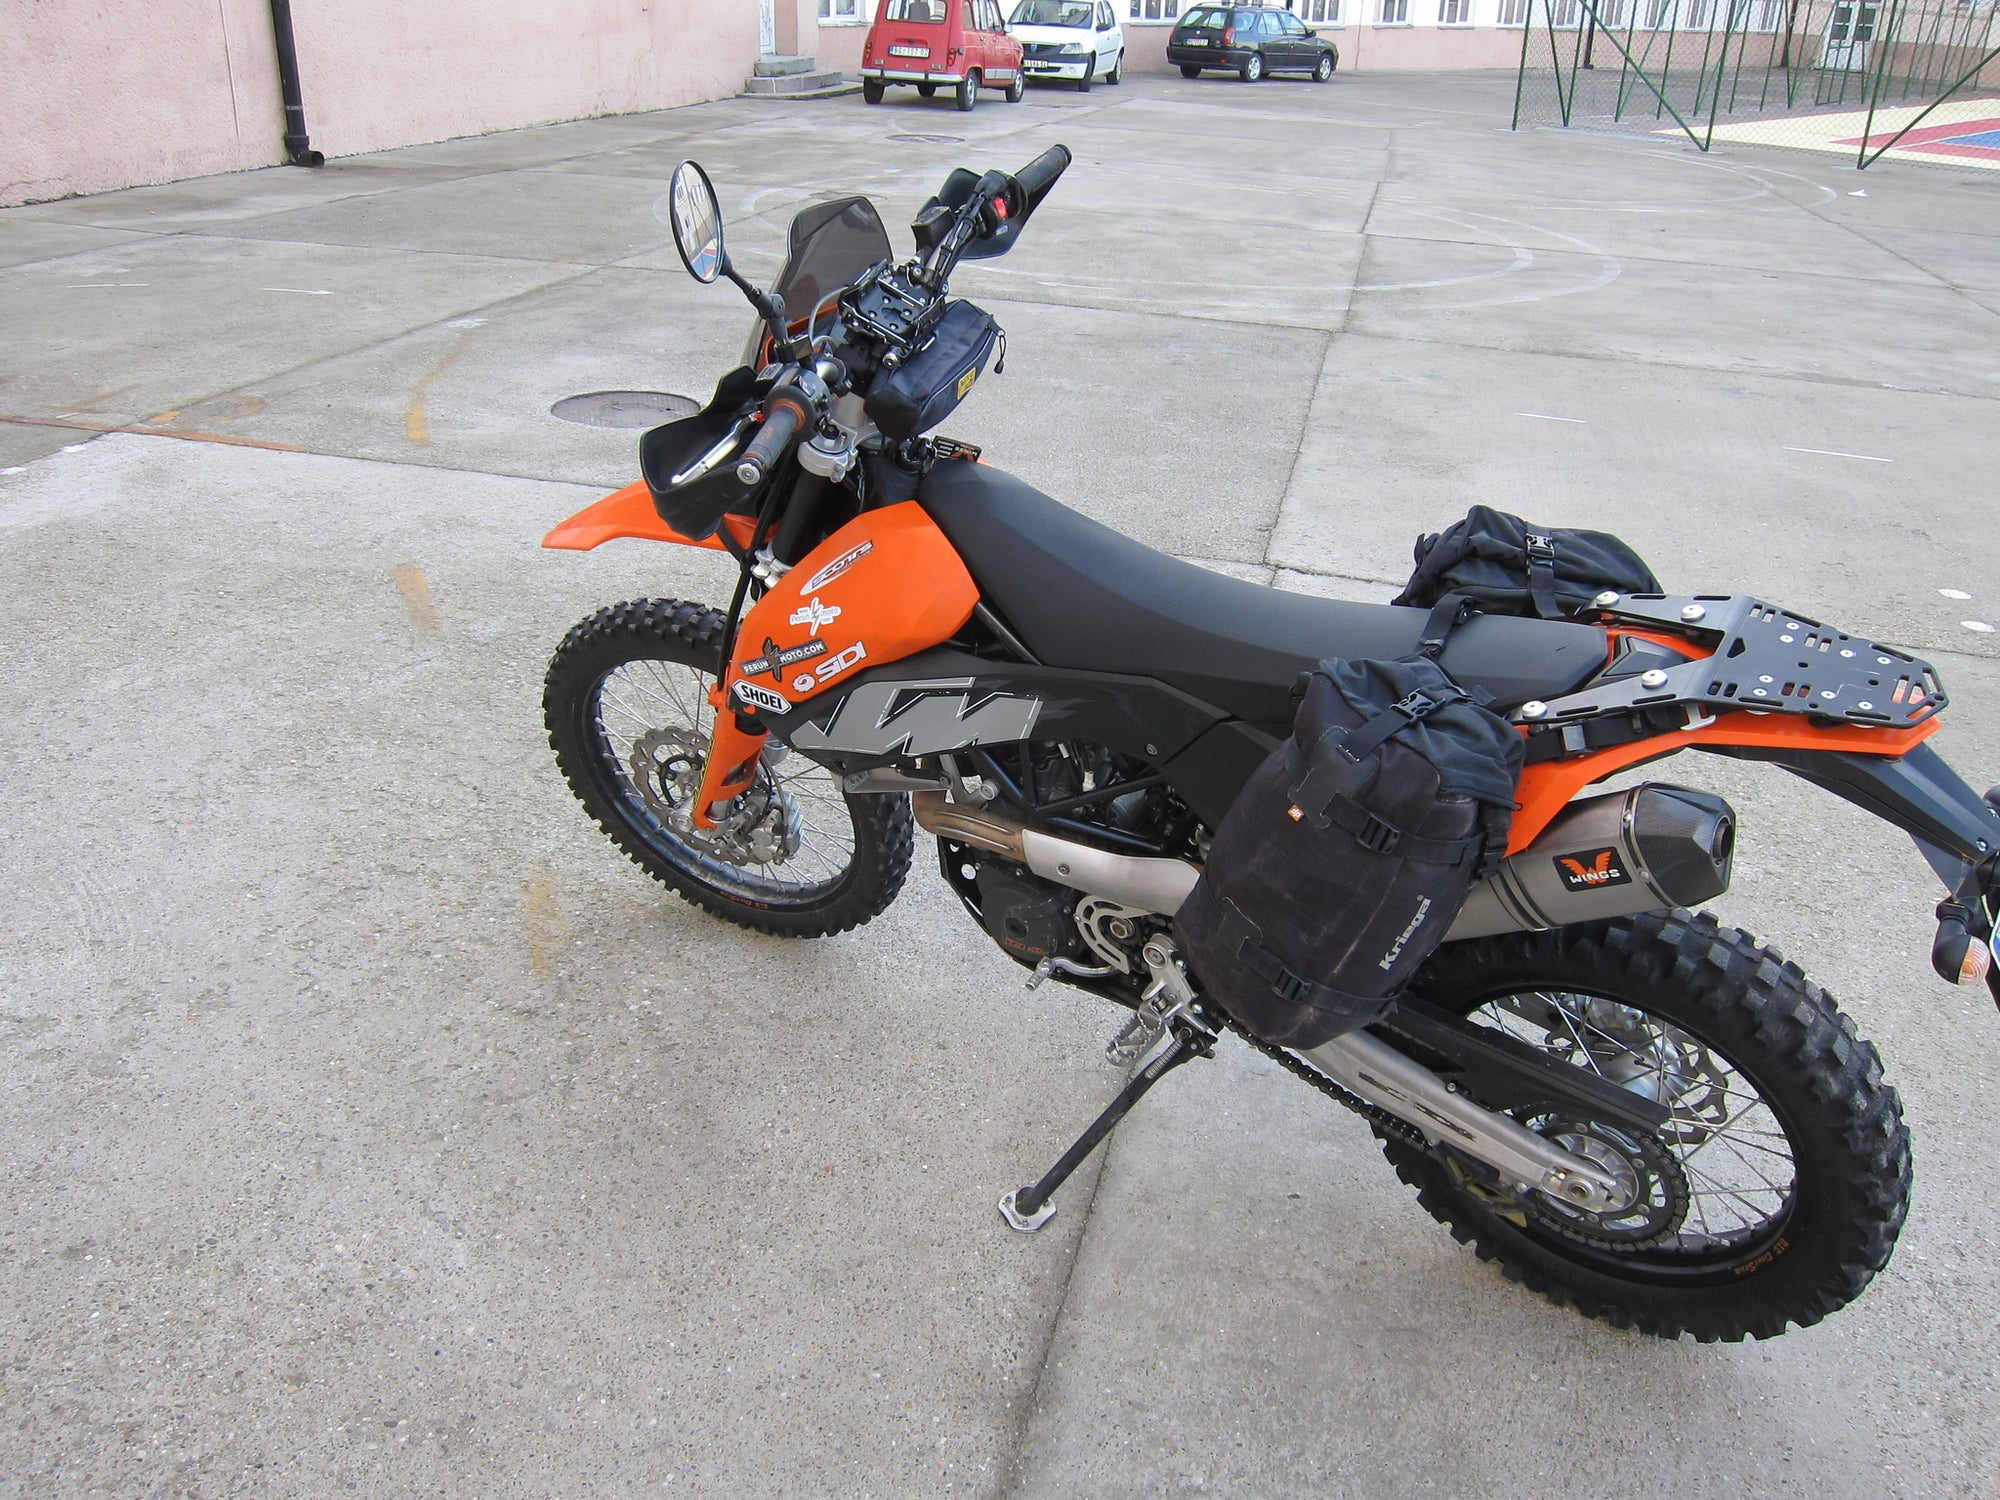 Kriega Overlander-30 bags, Perun moto KTM 690 Enduro Lugage rack SD and Heel guards